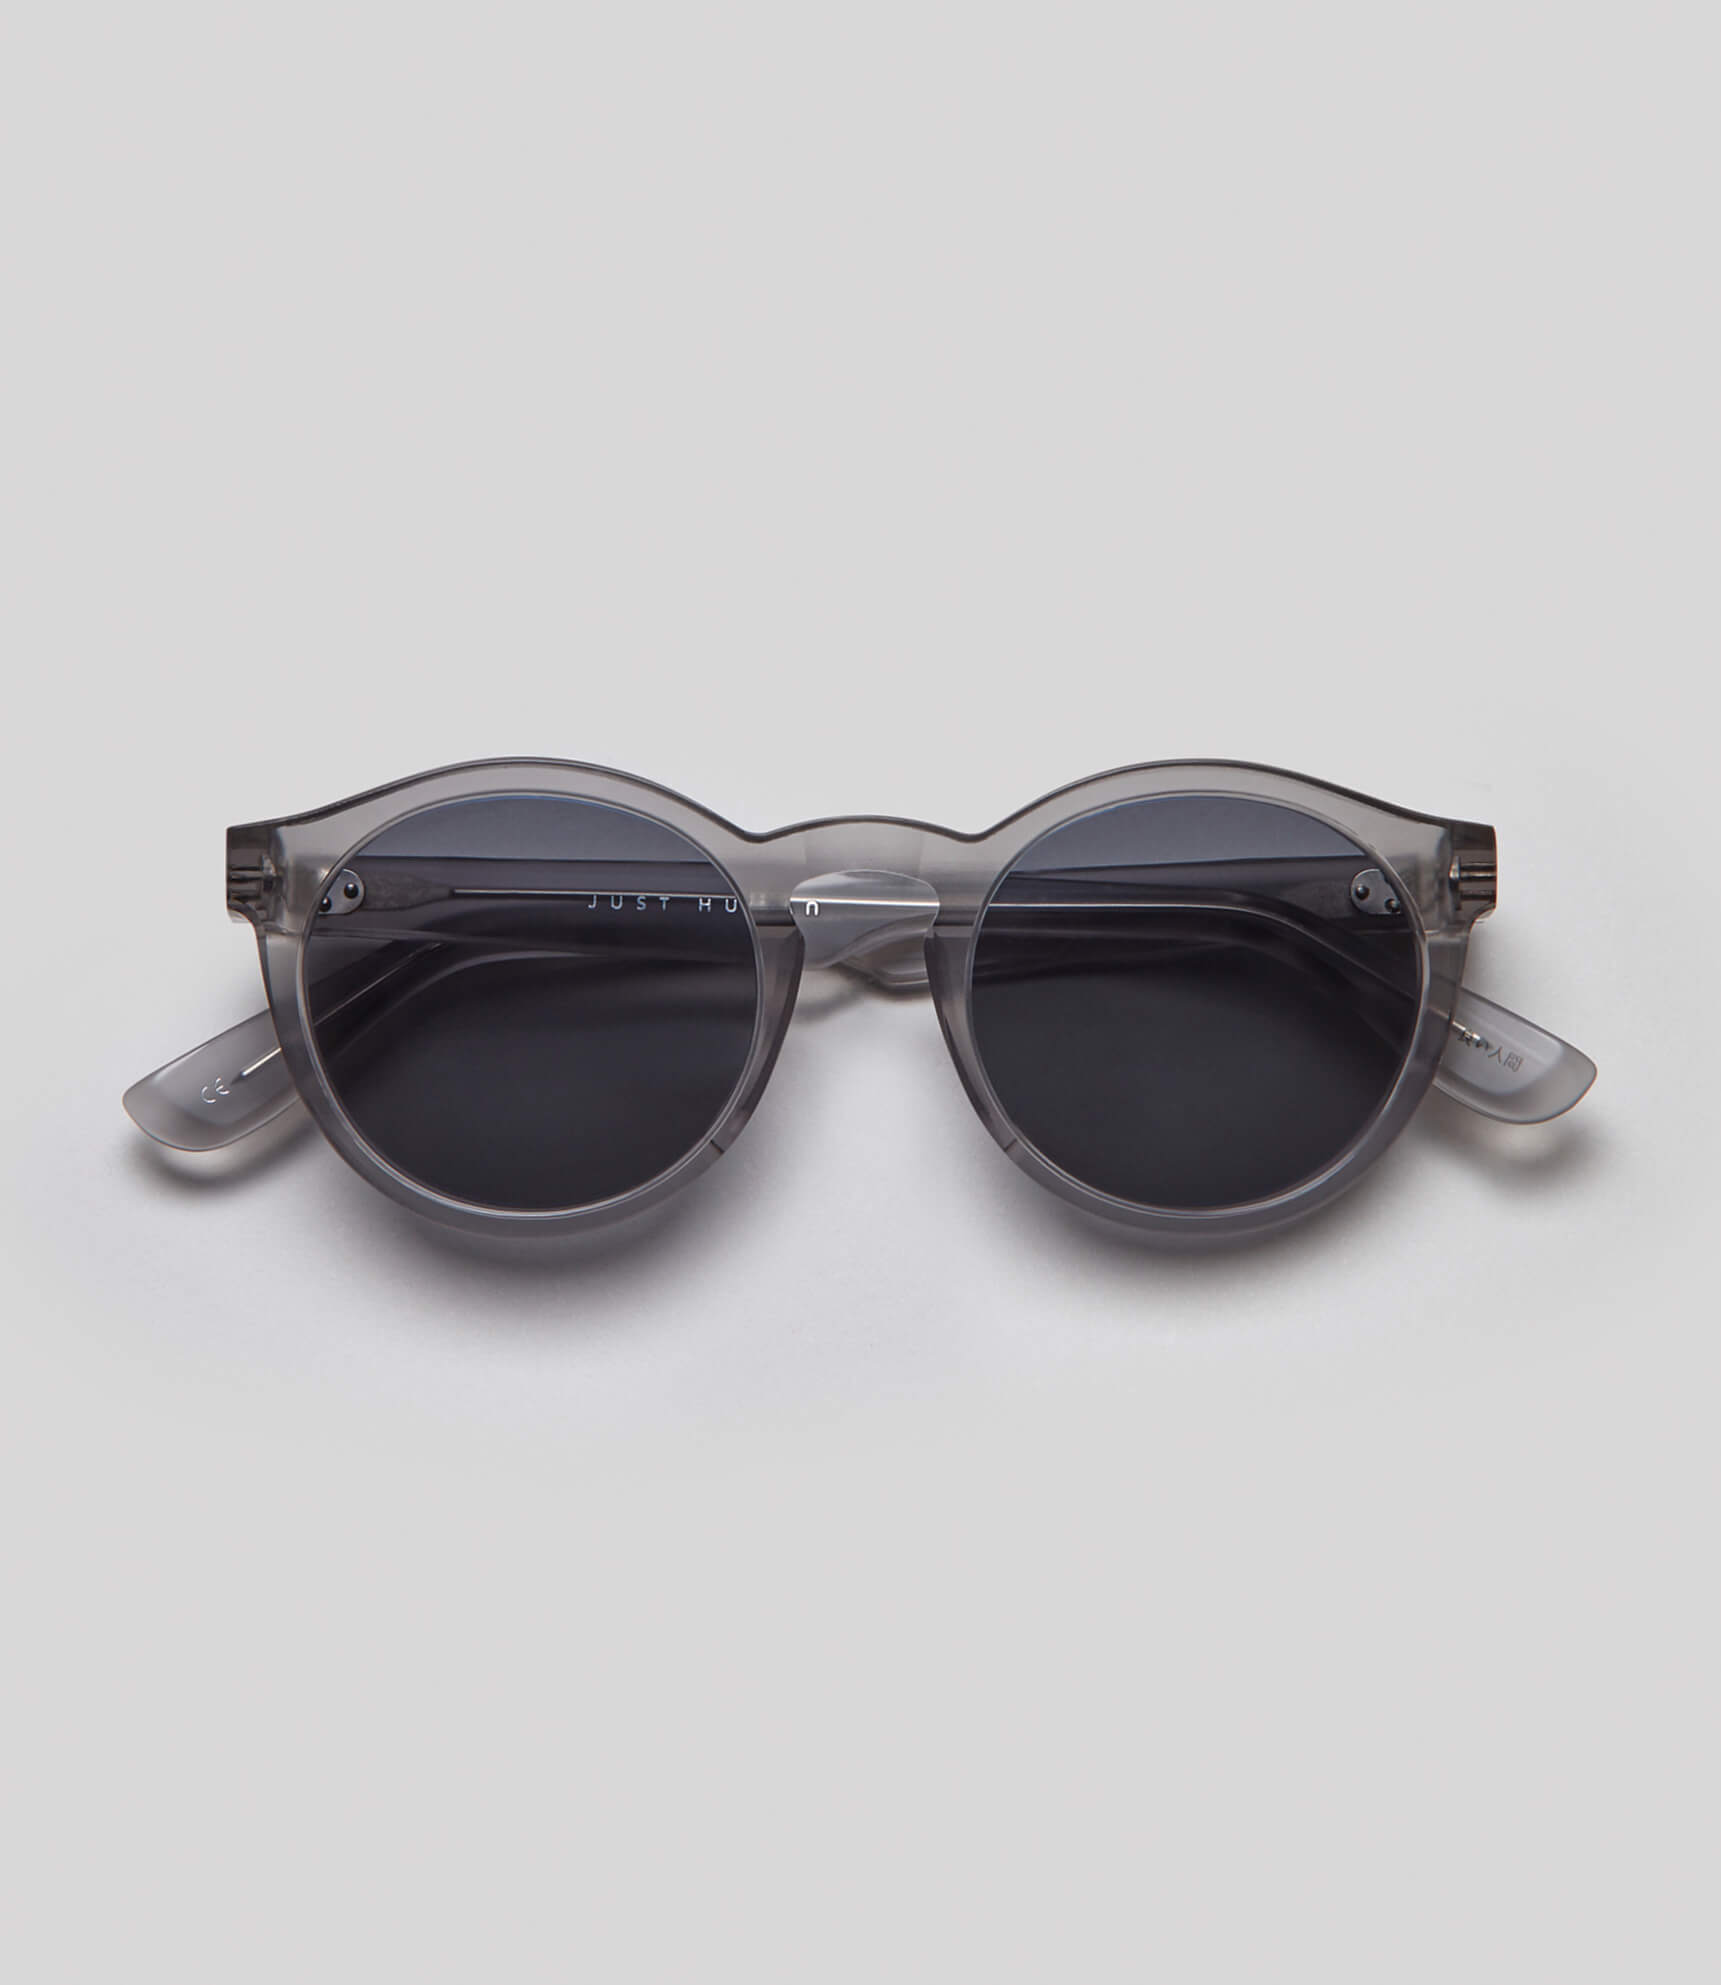 Round gray sunglasses eco friendly sustainable fashion made in Japan unisex sunglasses for men sunglasses for women and blue light filter